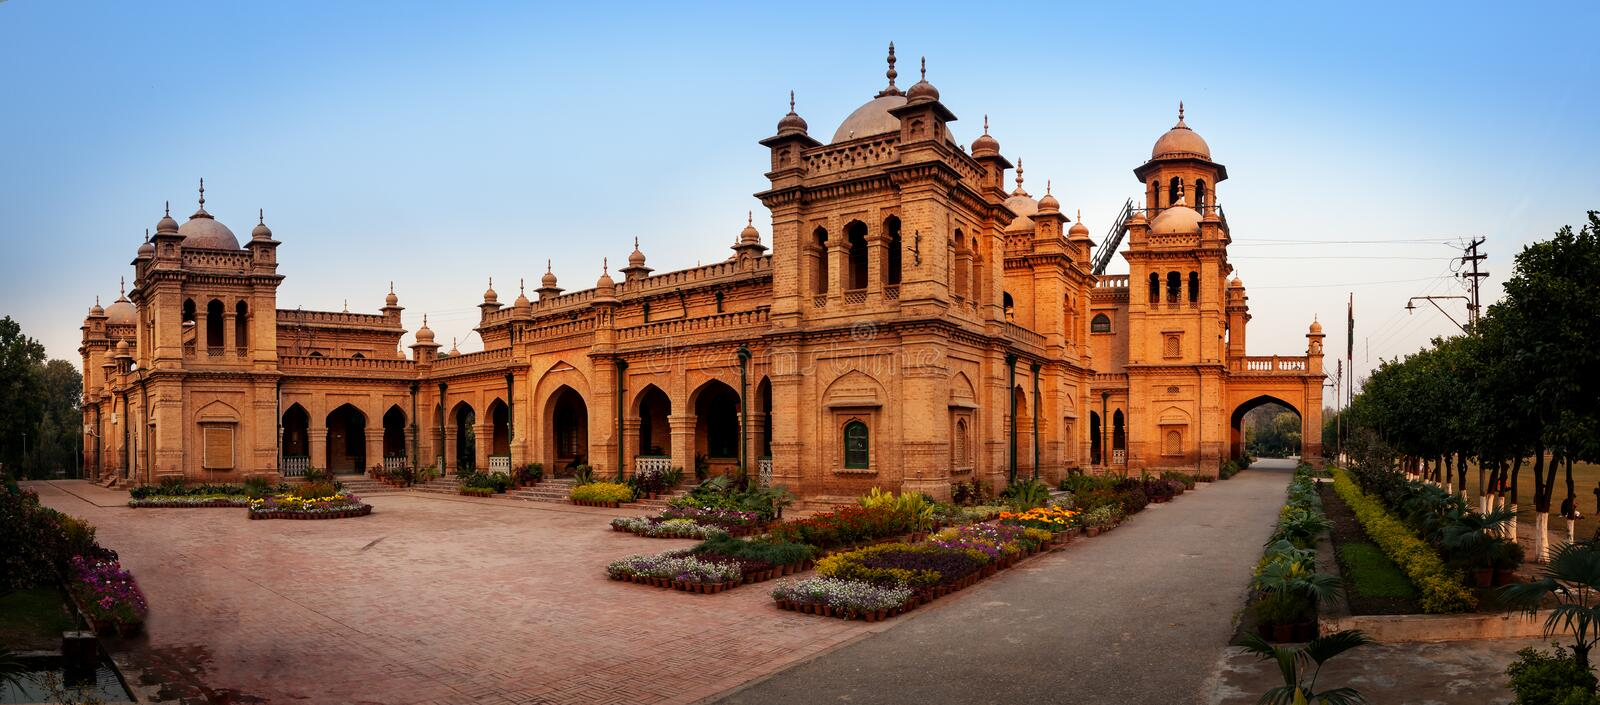 Islamia college Peshawar Pakistan royalty free stock image